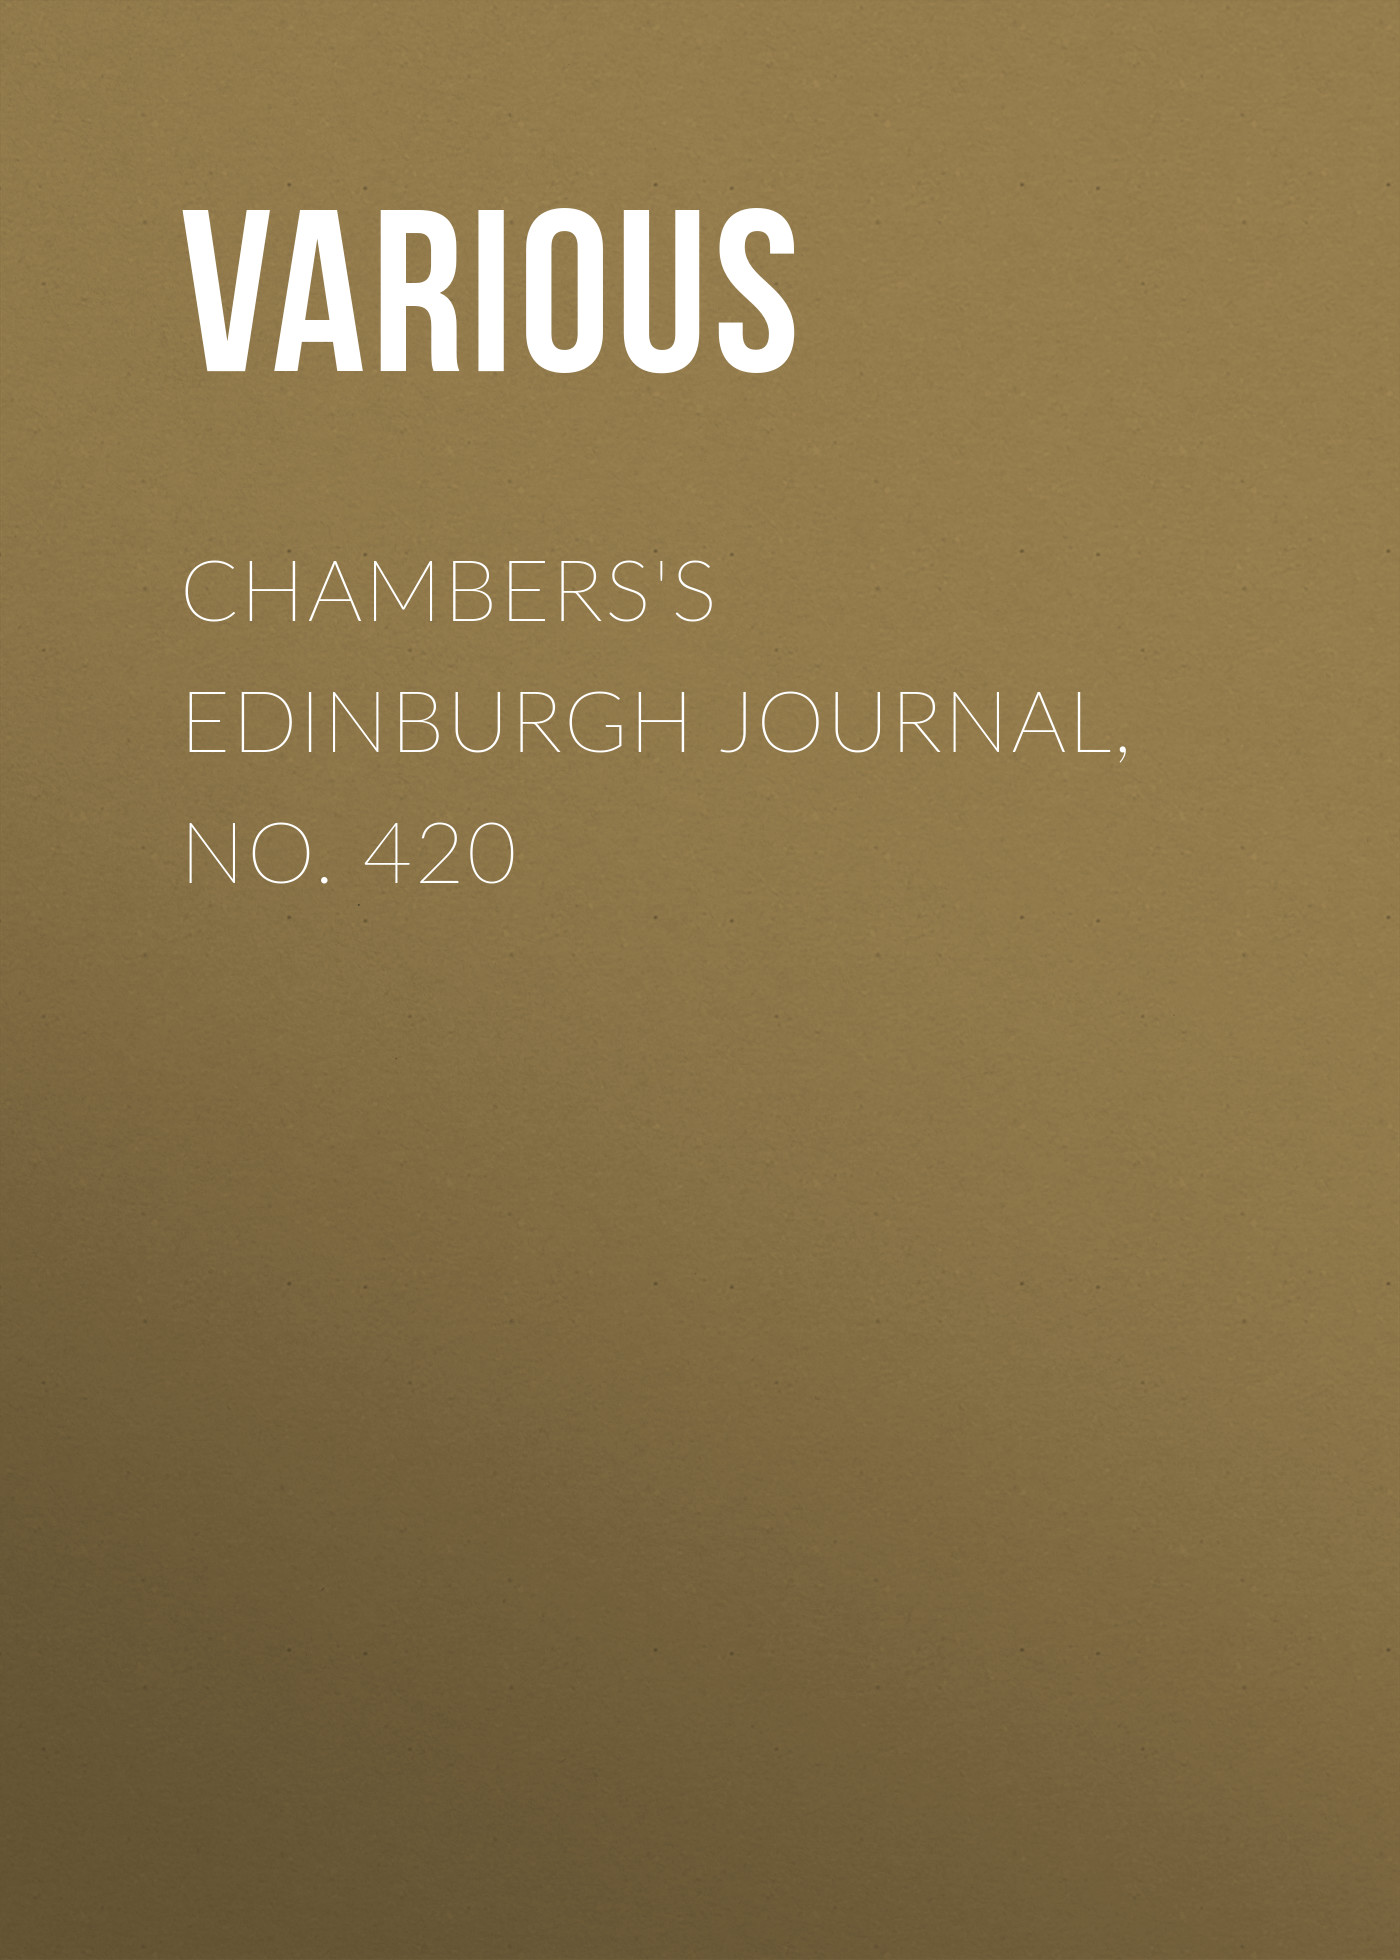 Various Chambers's Edinburgh Journal, No. 420 various chambers s edinburgh journal no 428